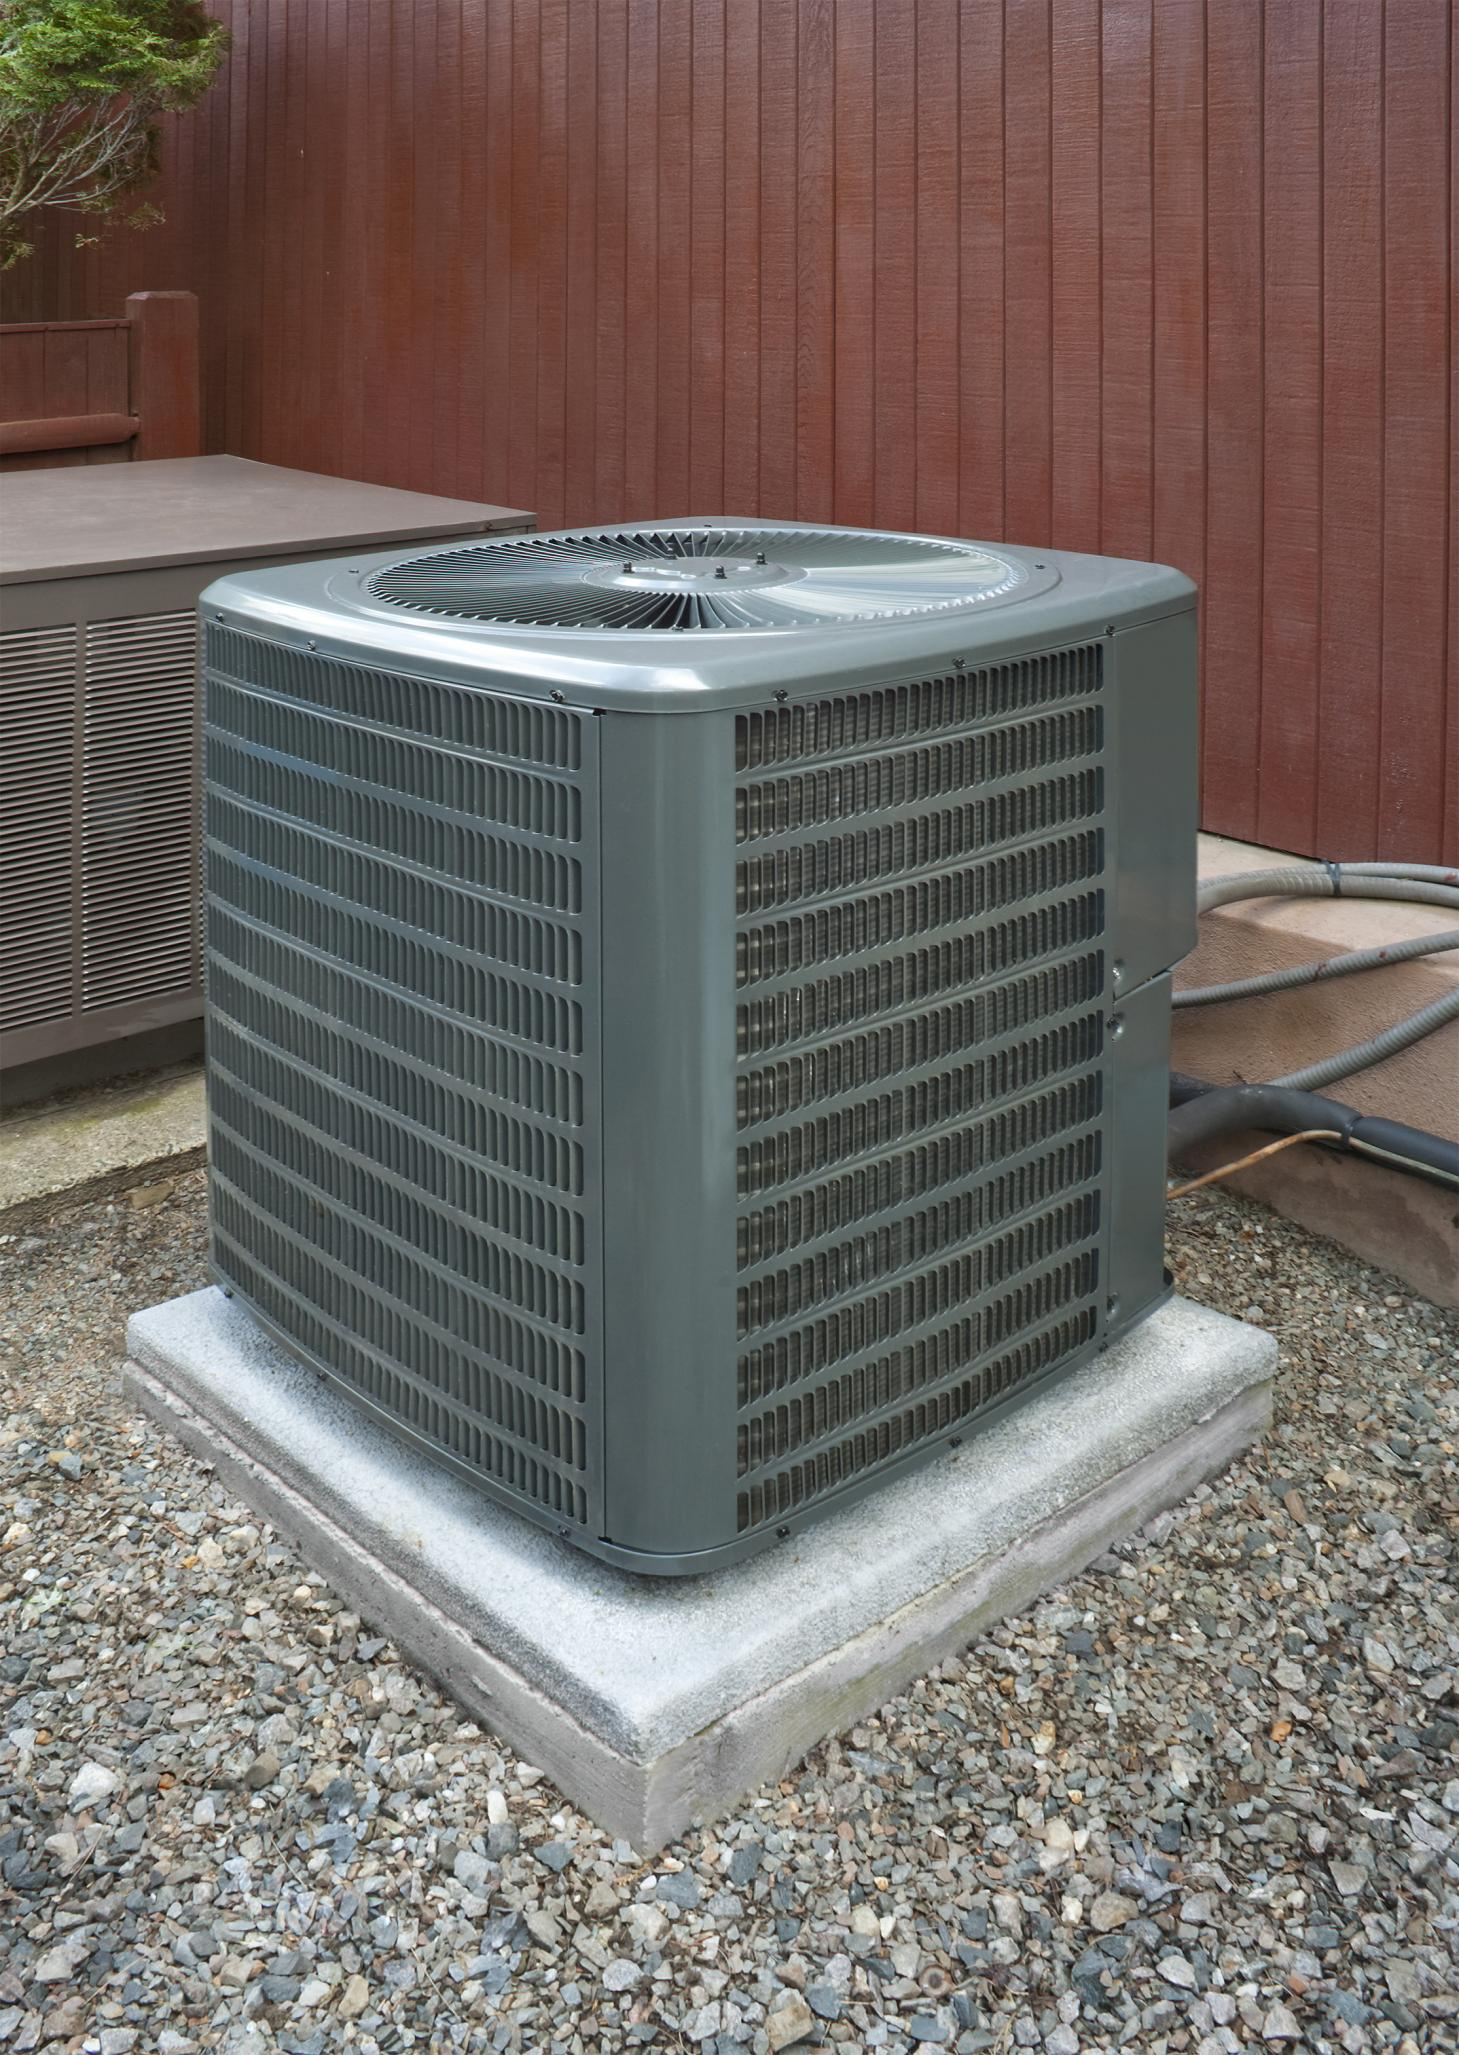 Heating Cooling Units For Home : Tips when buying a new central air unit